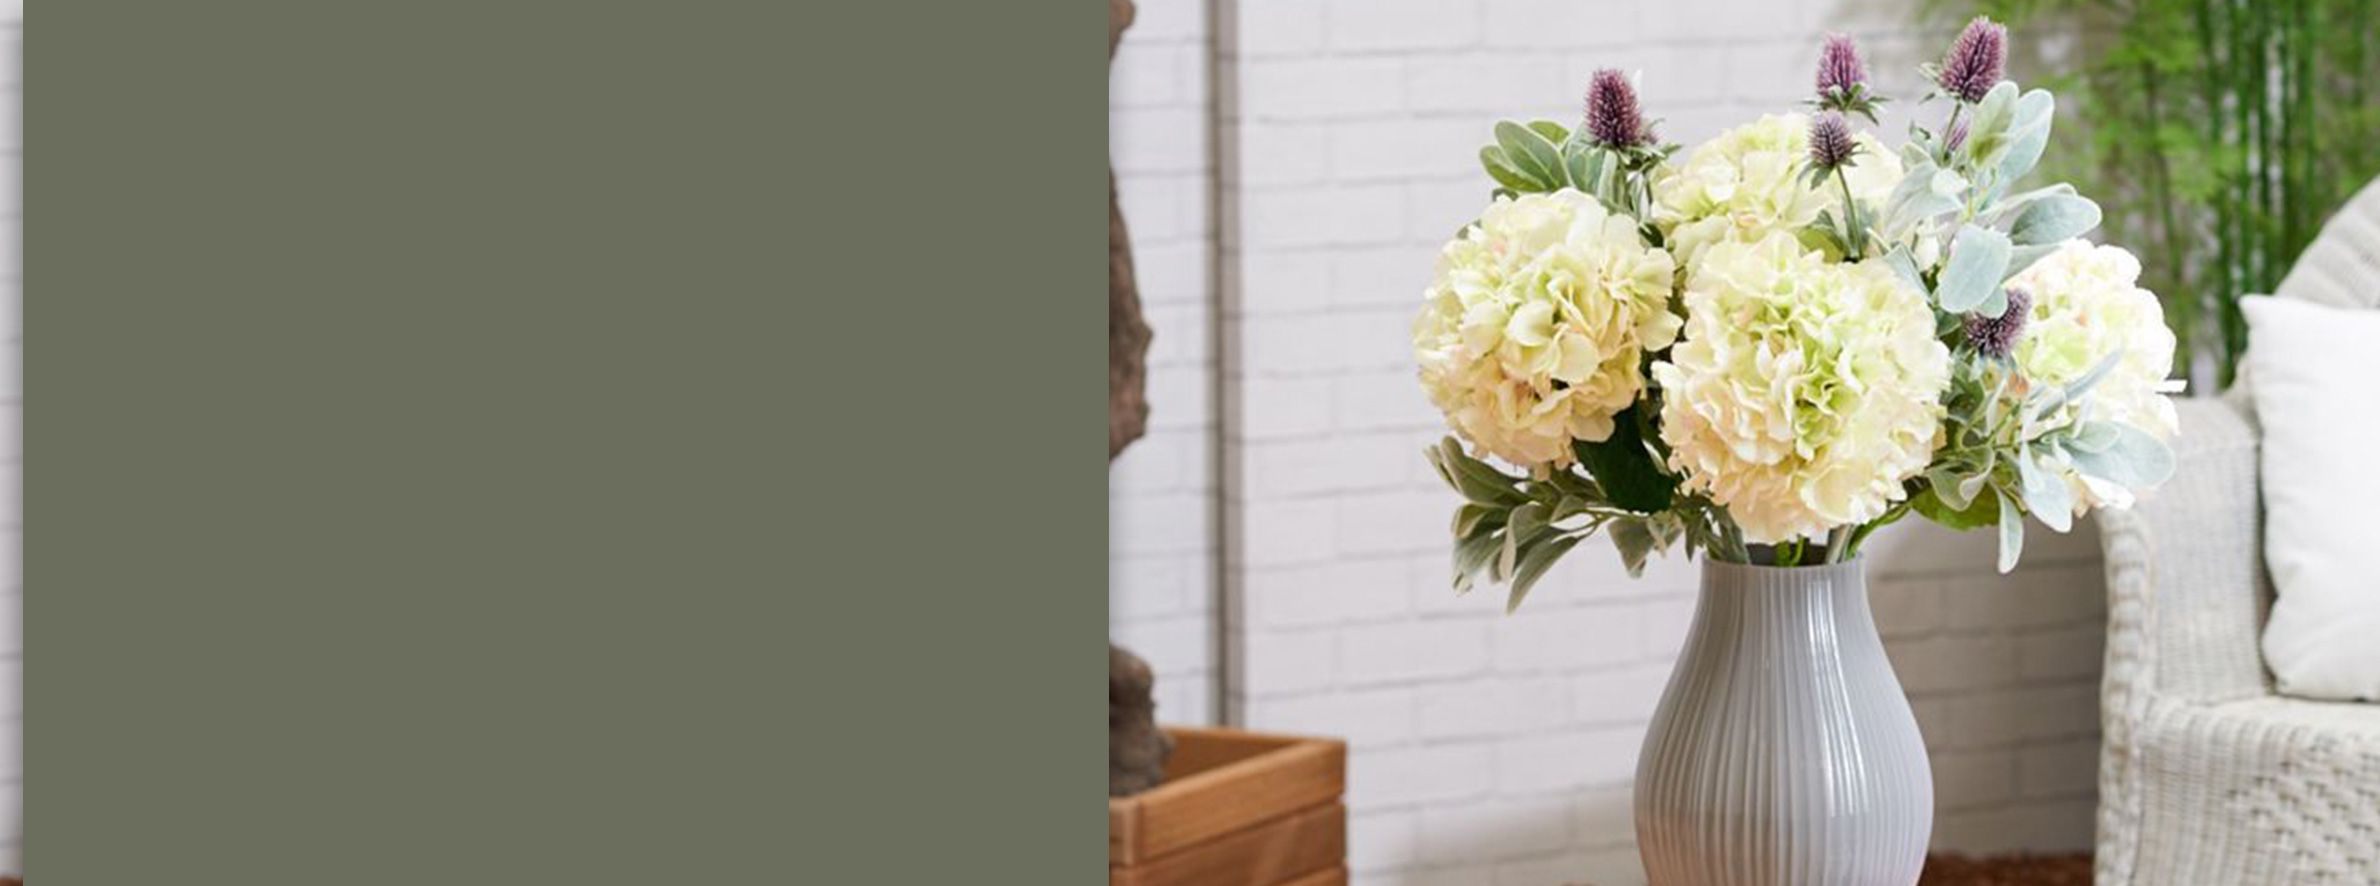 8 Ways With Artificial Flowers Vases